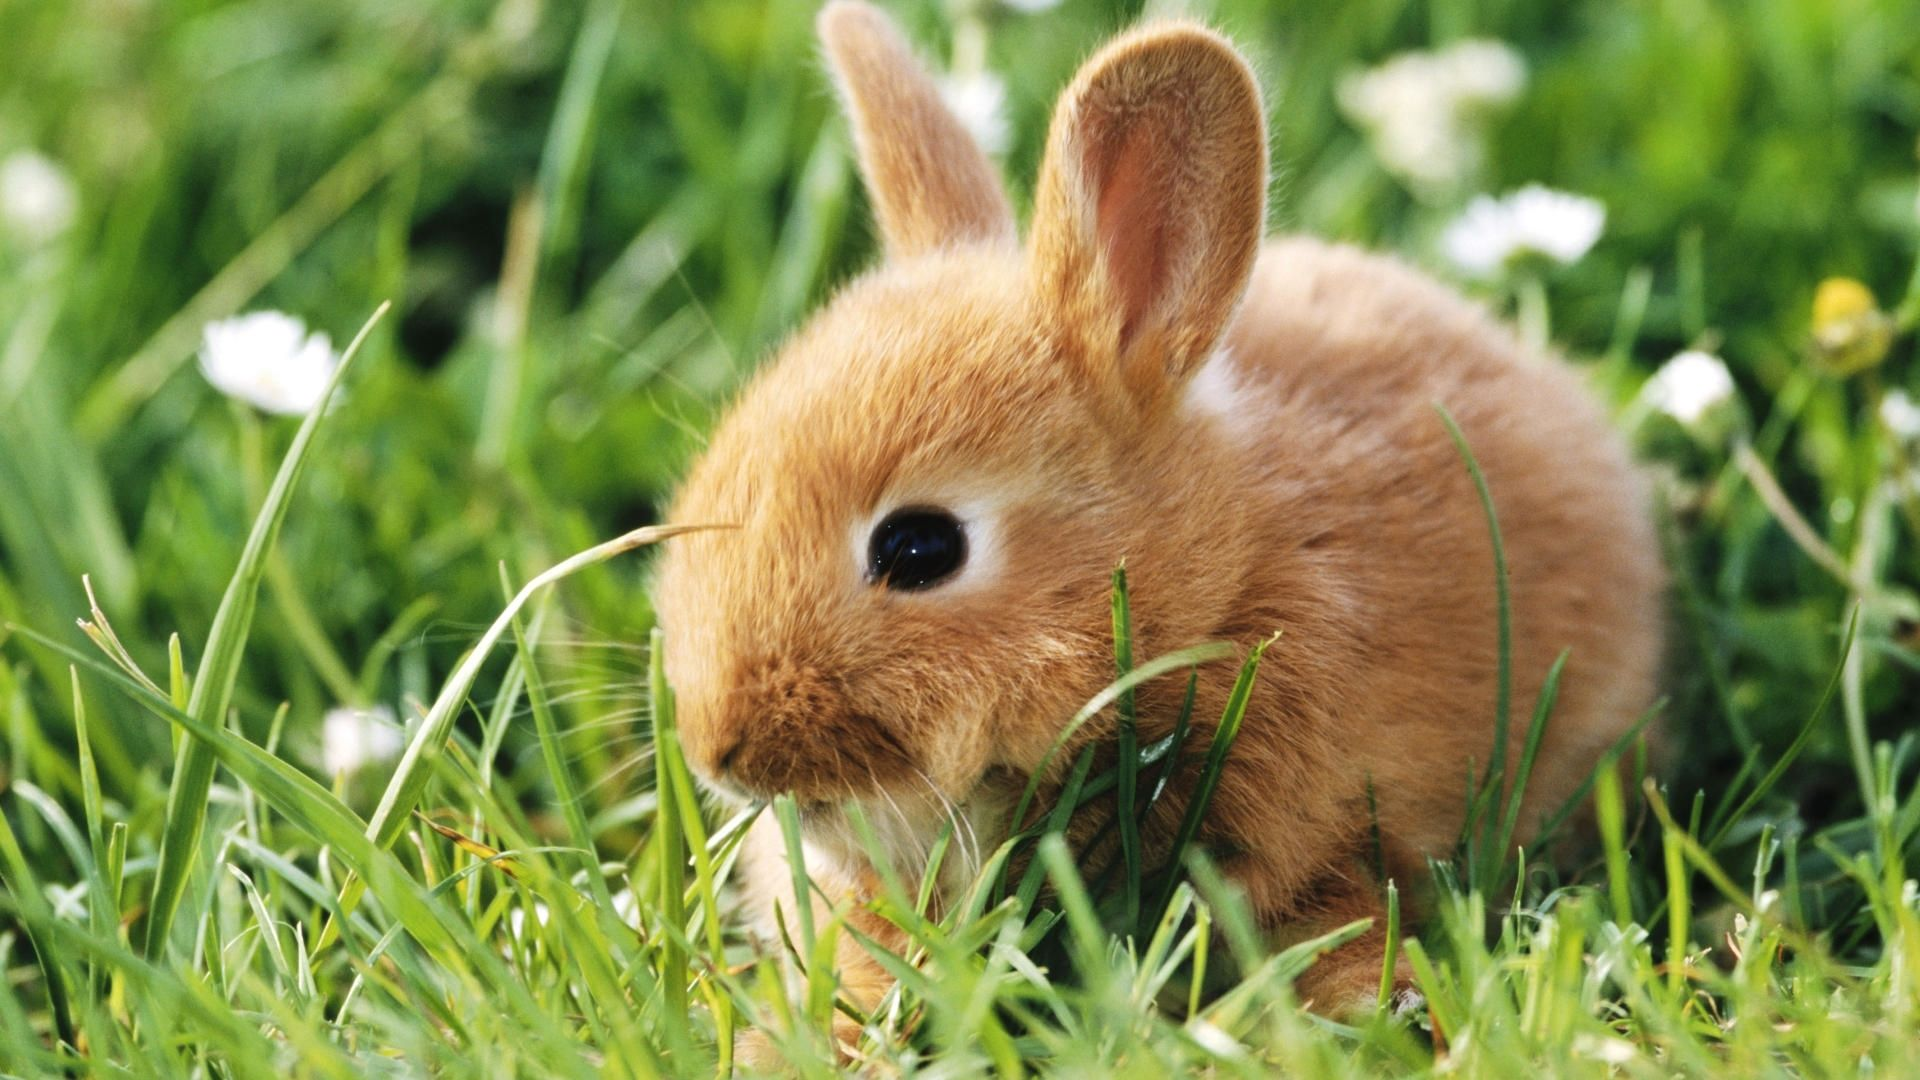 Bunny Free Wallpaper and Background